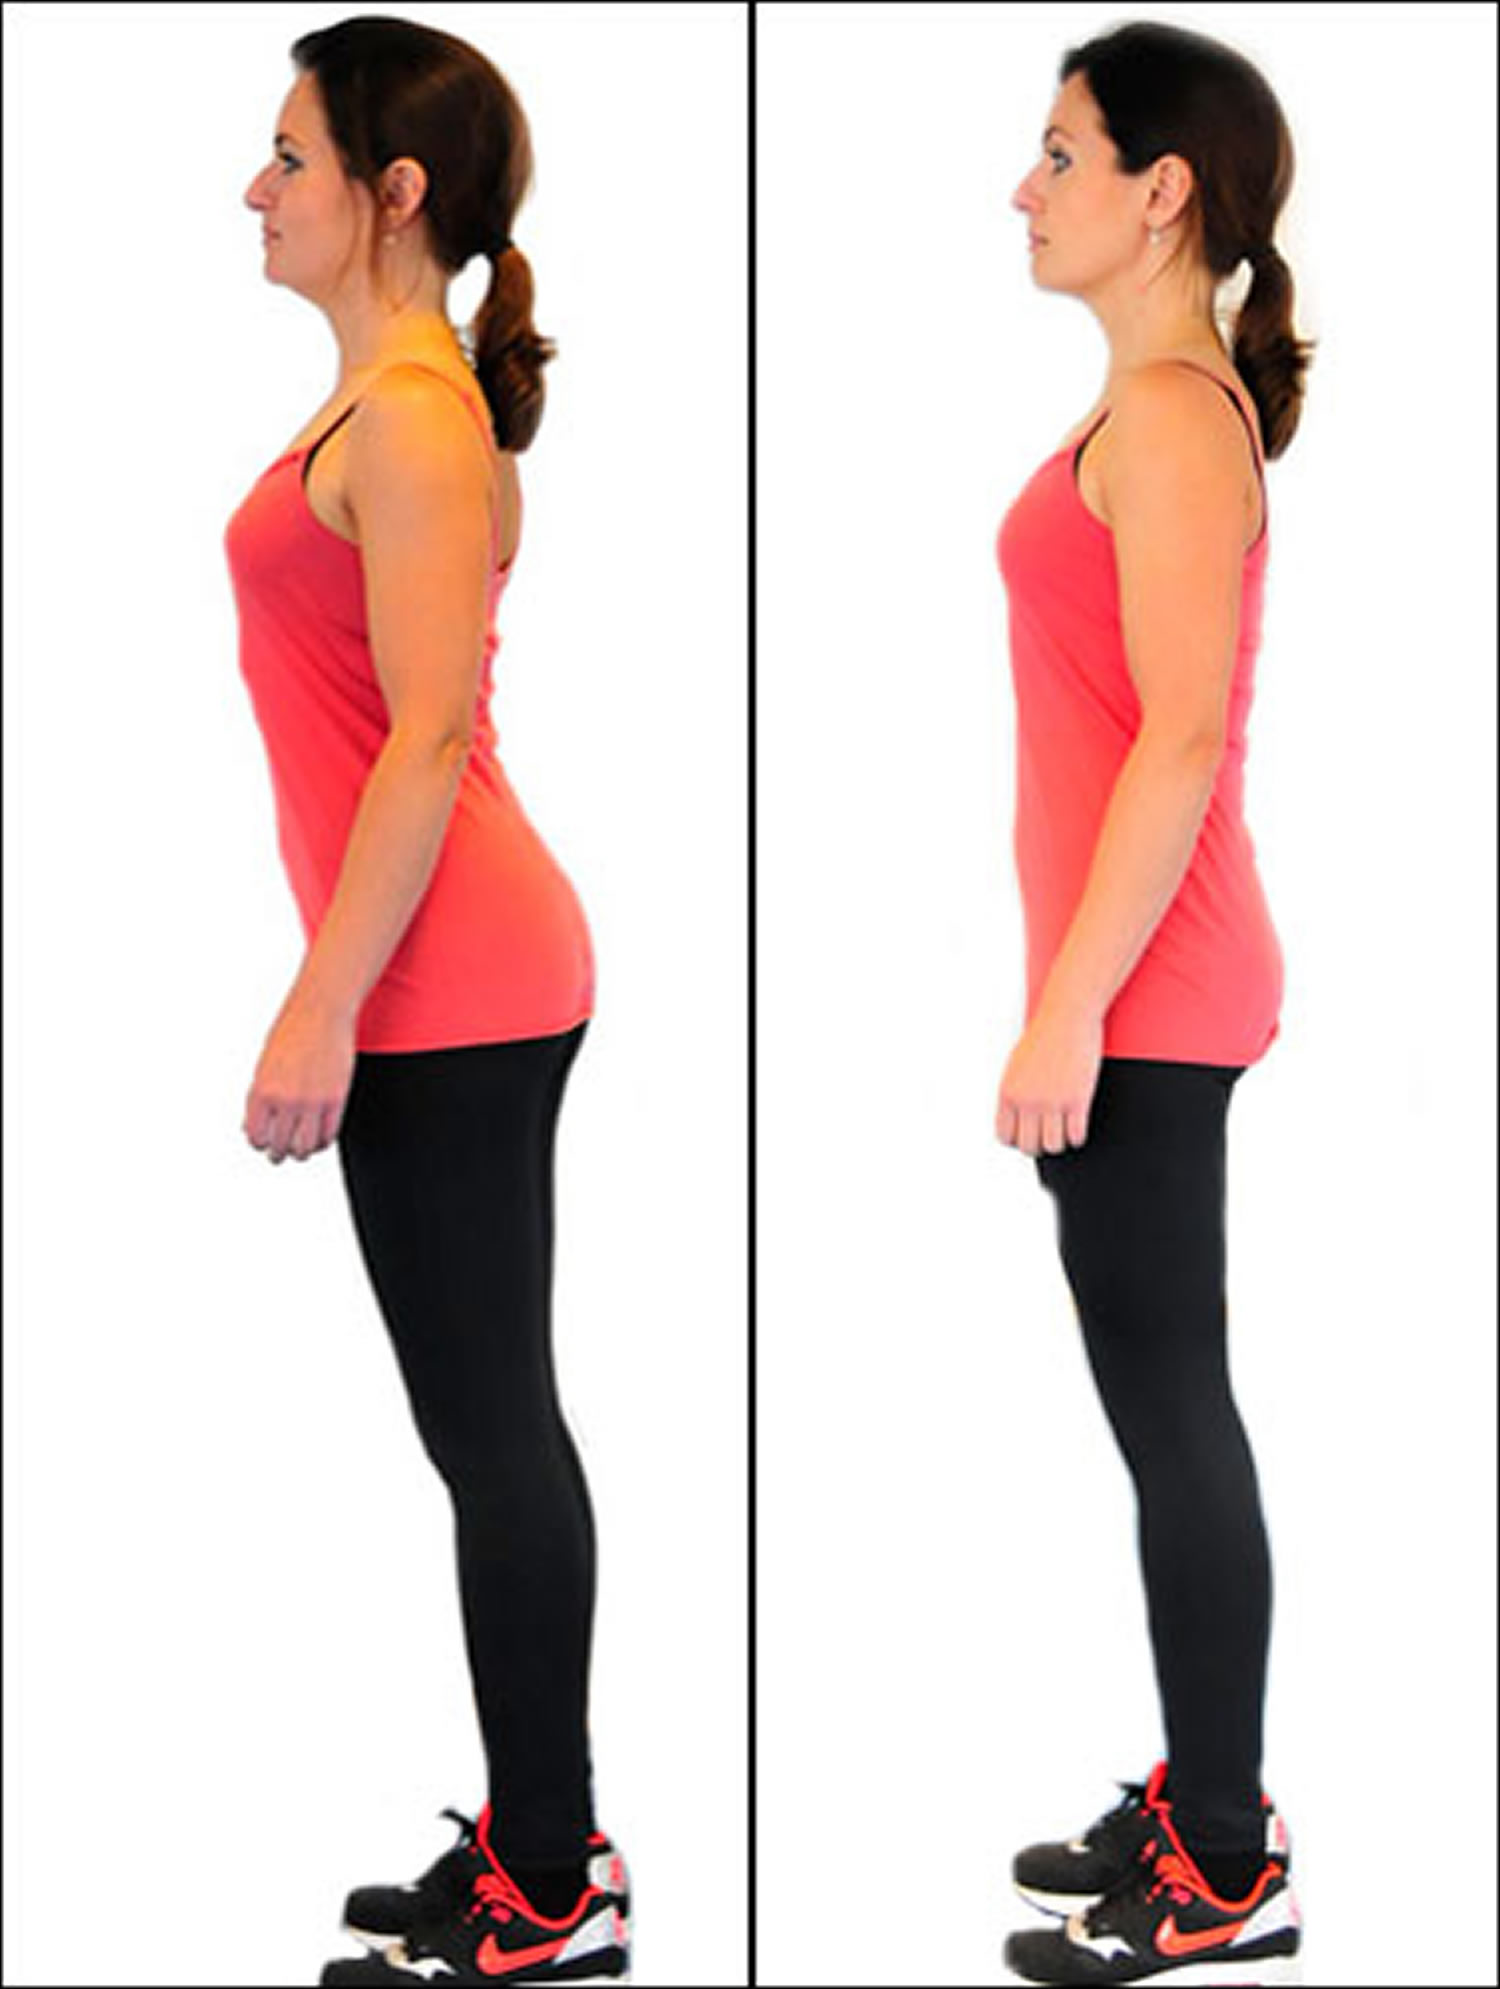 Sticking your bottom out - bad posture